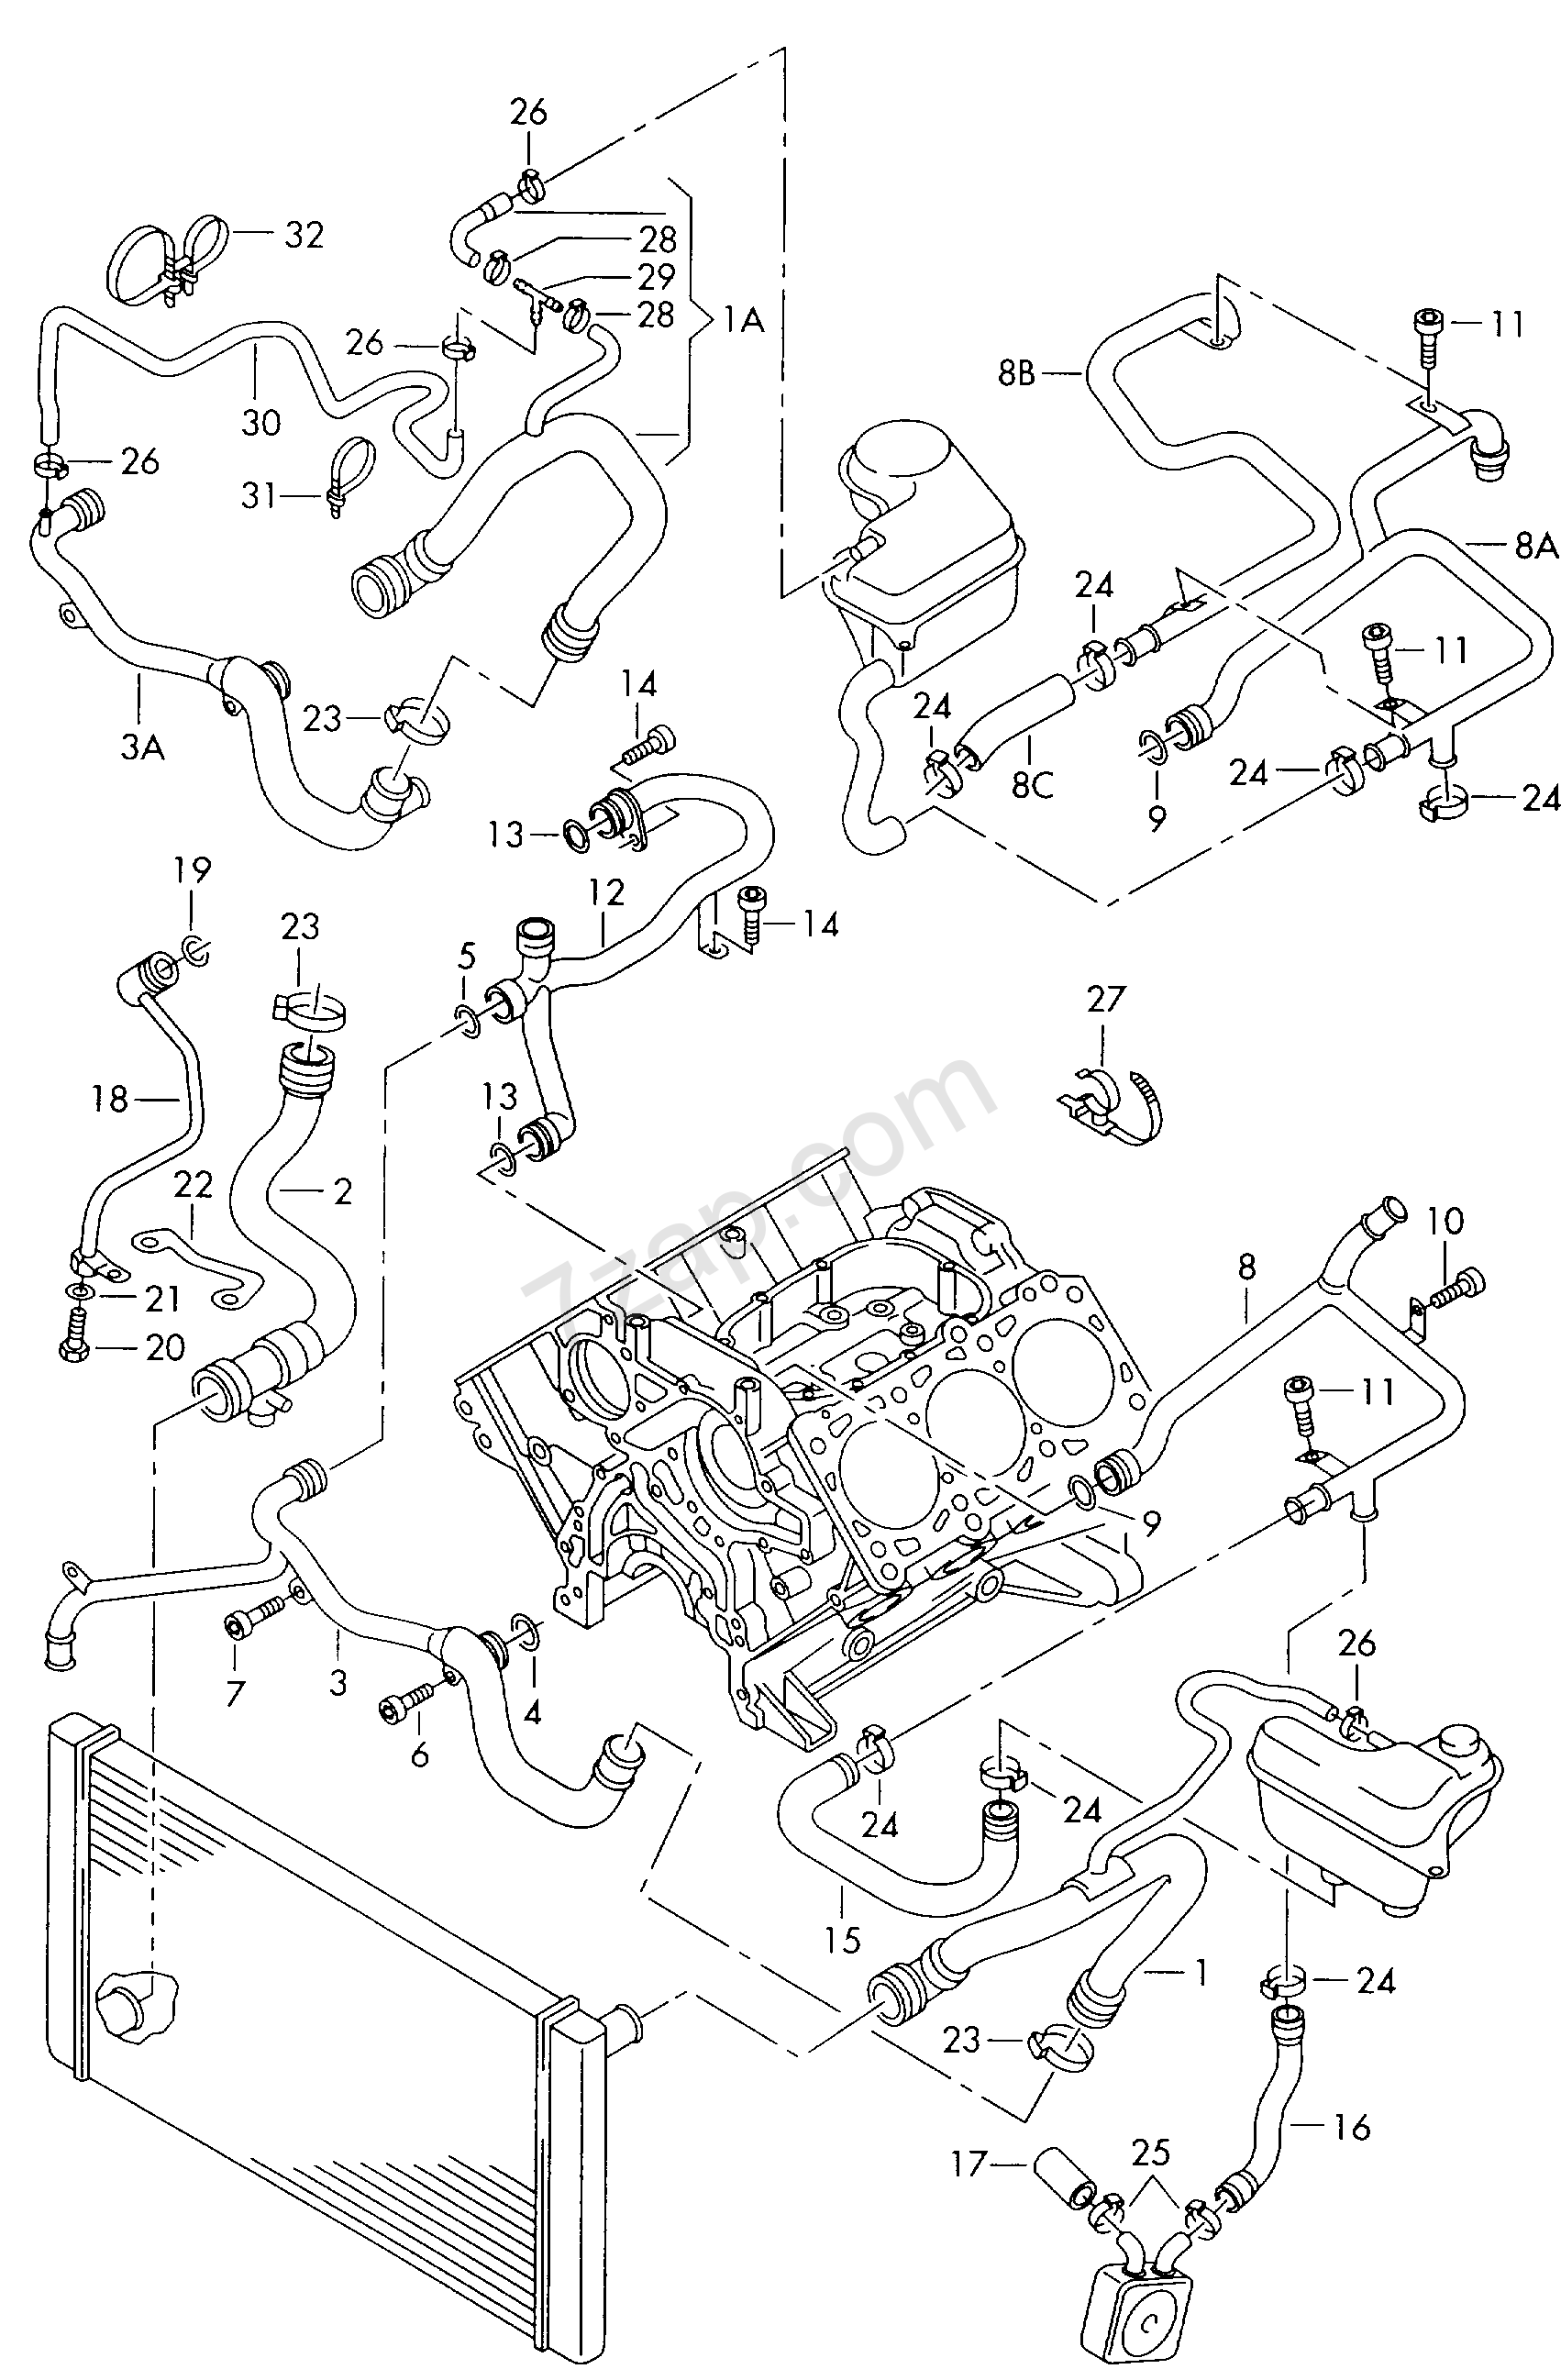 2000 Audi A6 Engine Diagram Cooling System. 2001 audi a6 cooling system  diagram free engine 2000. coolant cooling system audi a6 allroad quattro  a6ar 2002. radiator components for 2000 audi a6 quattroA.2002-acura-tl-radio.info. All Rights Reserved.